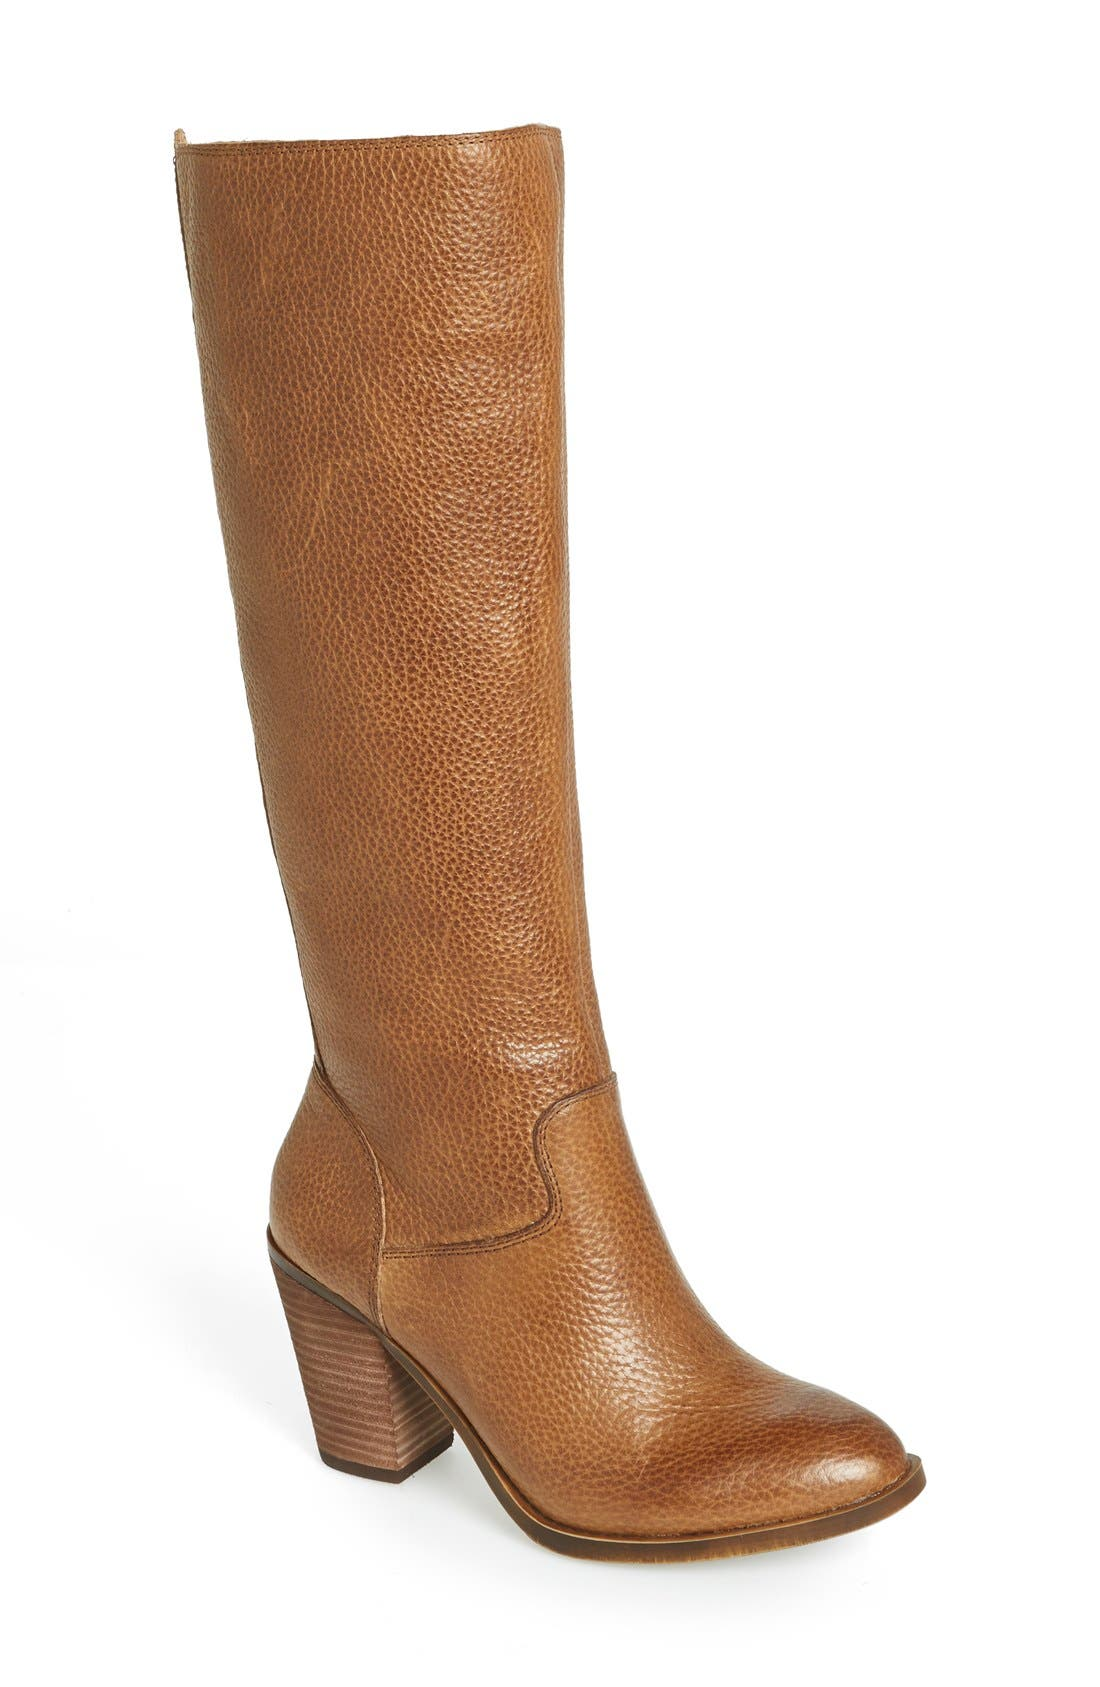 Alternate Image 1 Selected - Lucky Brand 'Espositoh' Tall Boot (Women)